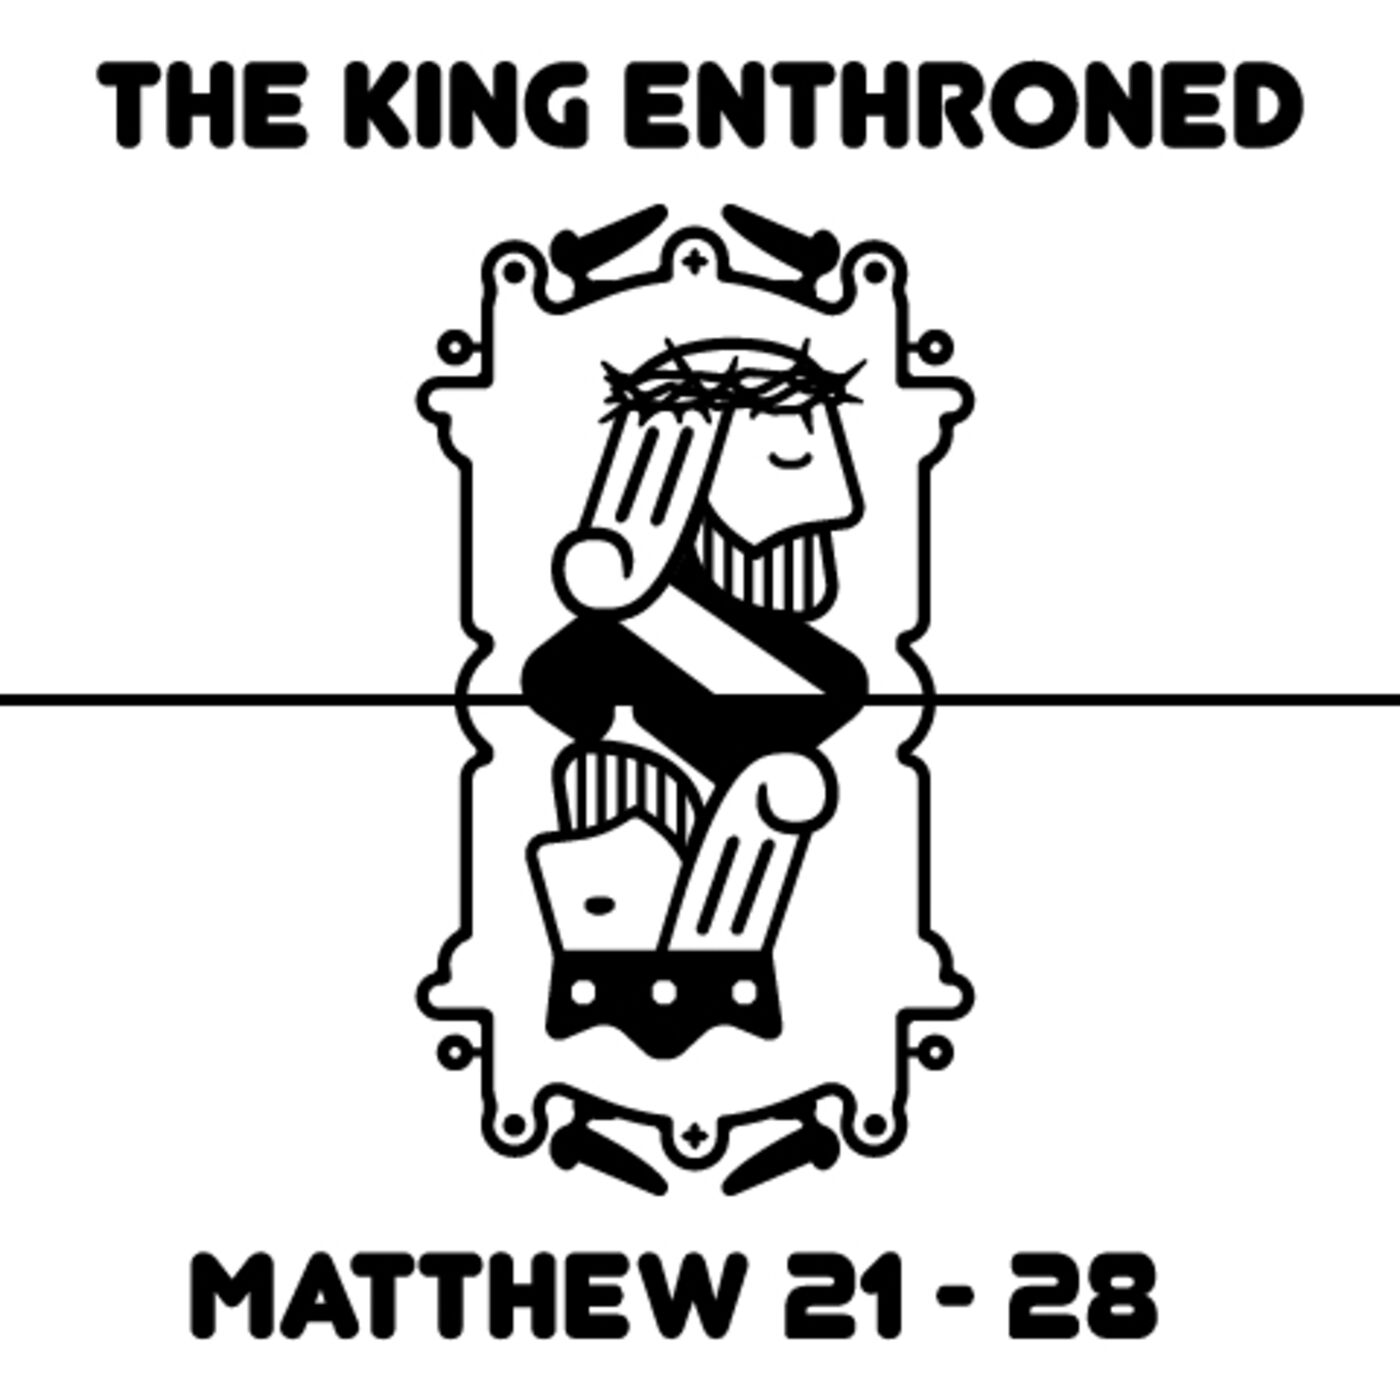 Matthew: The King's Sacrifice